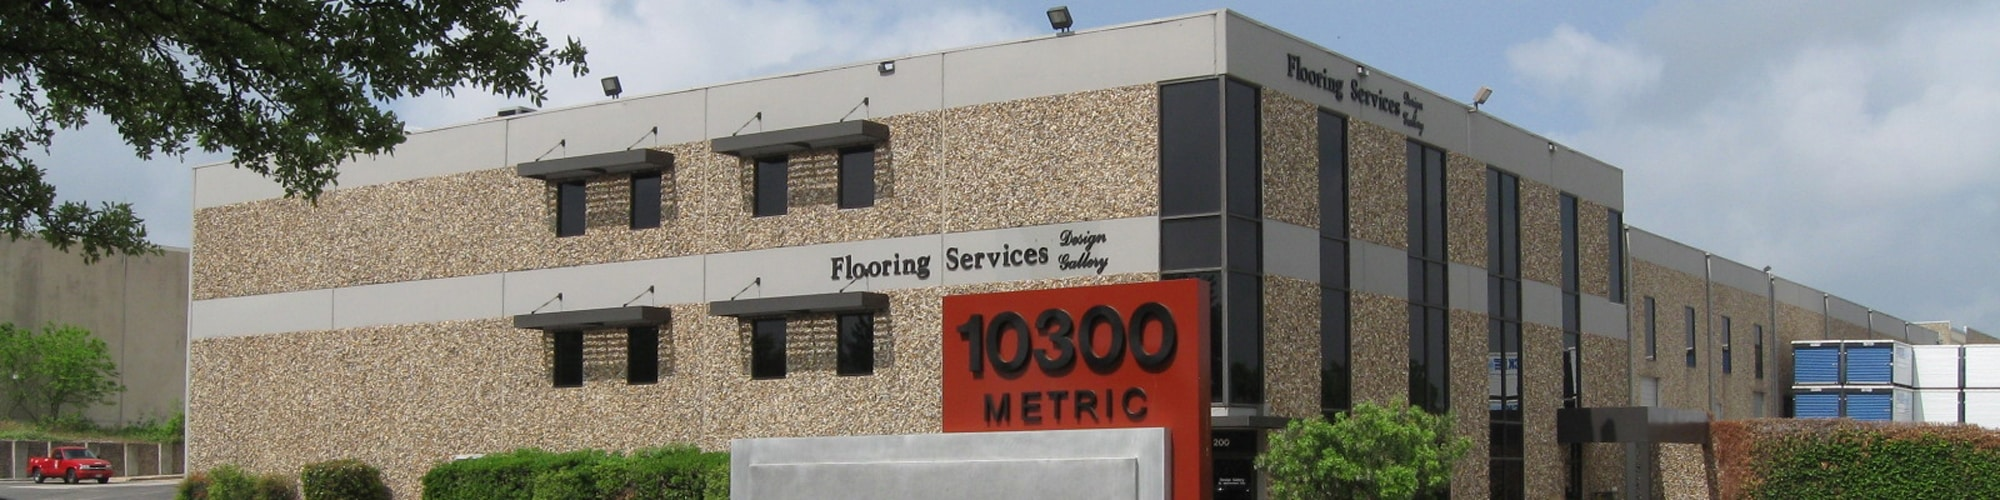 Metric Commerce Center Building and Sign | 10300 Metric Boulevard in Austin, Texas